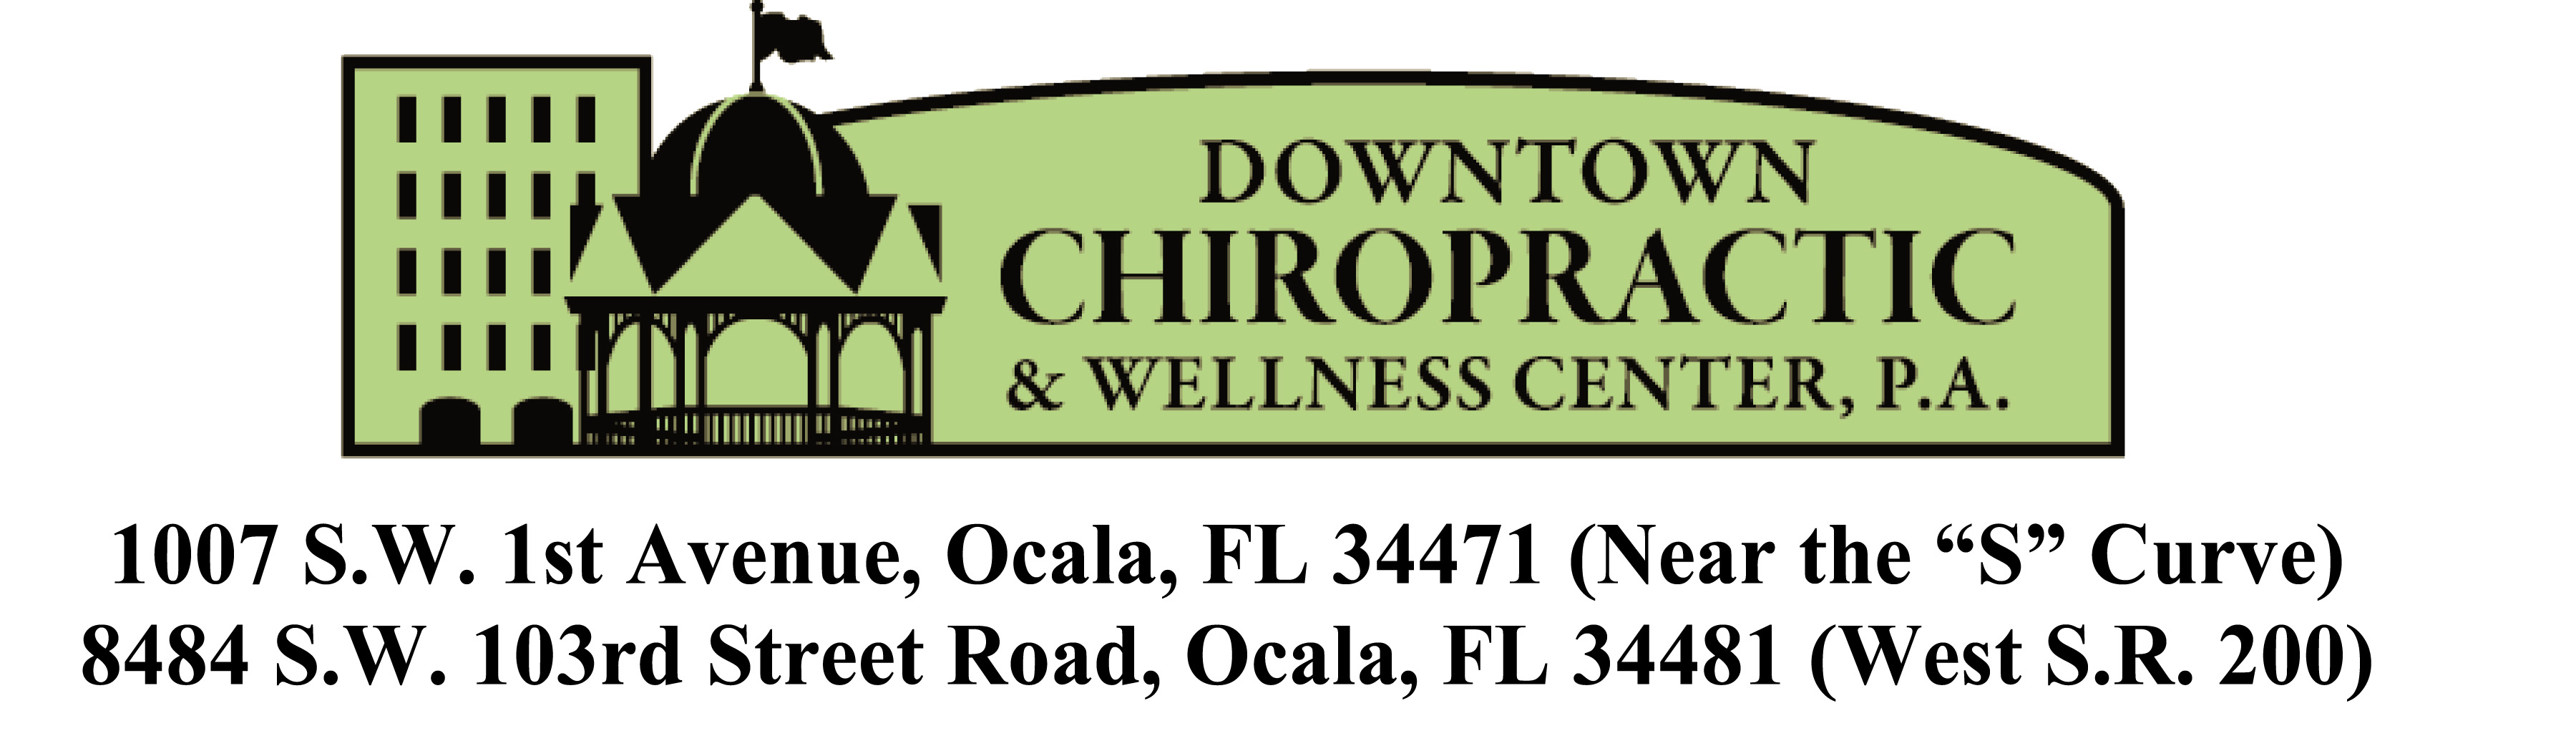 Downtown Chiropractic & Wellness Center